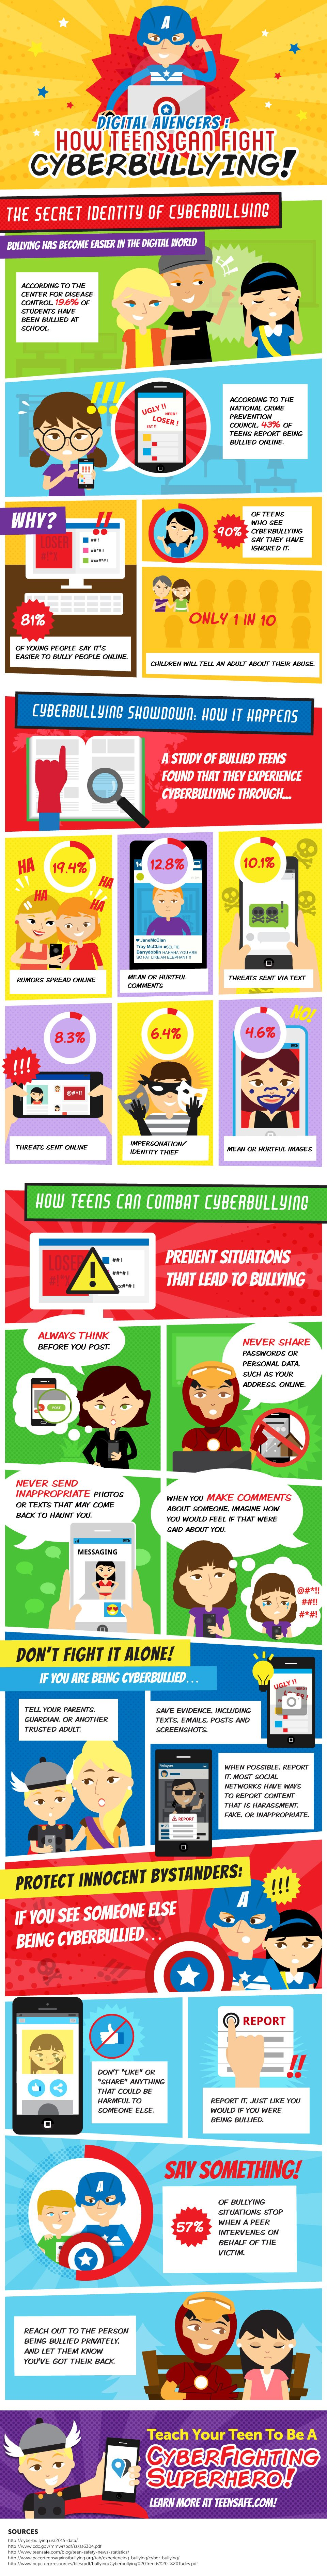 Digital Avengers: Teens Fight Cyberbullying - infographic